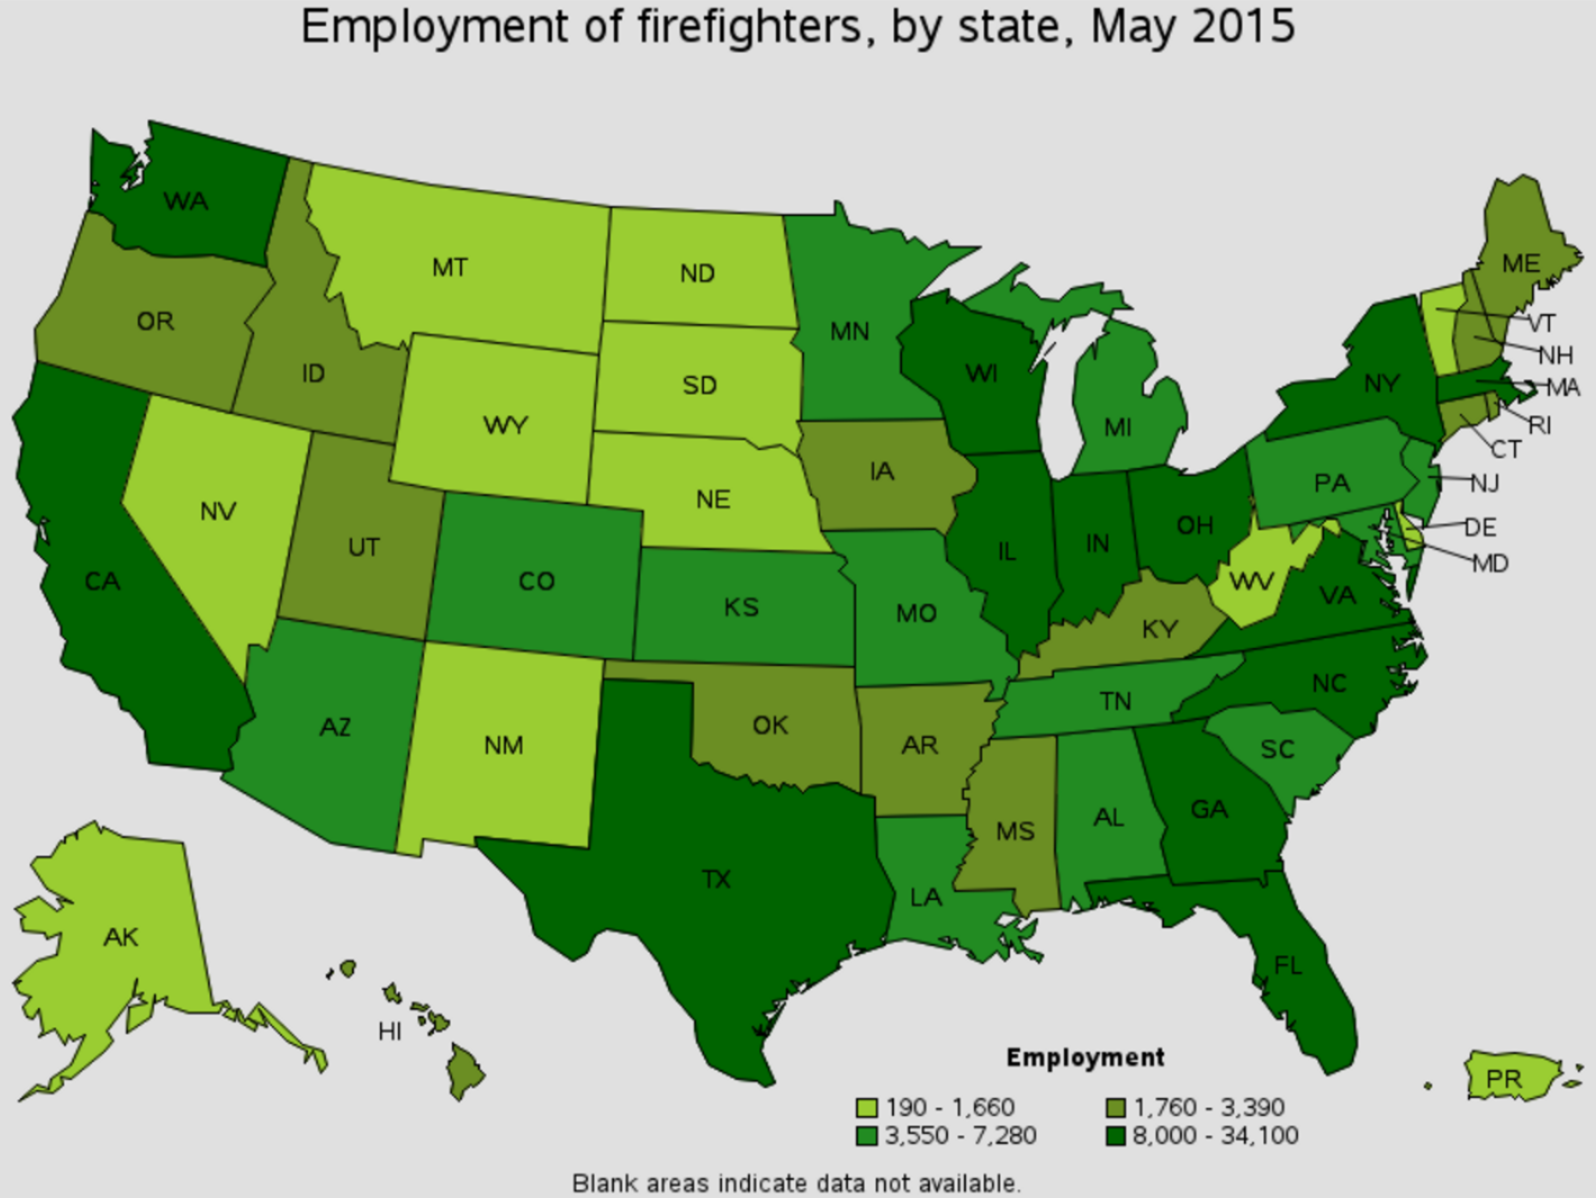 firefighter job outlook by state Waterproof Louisiana